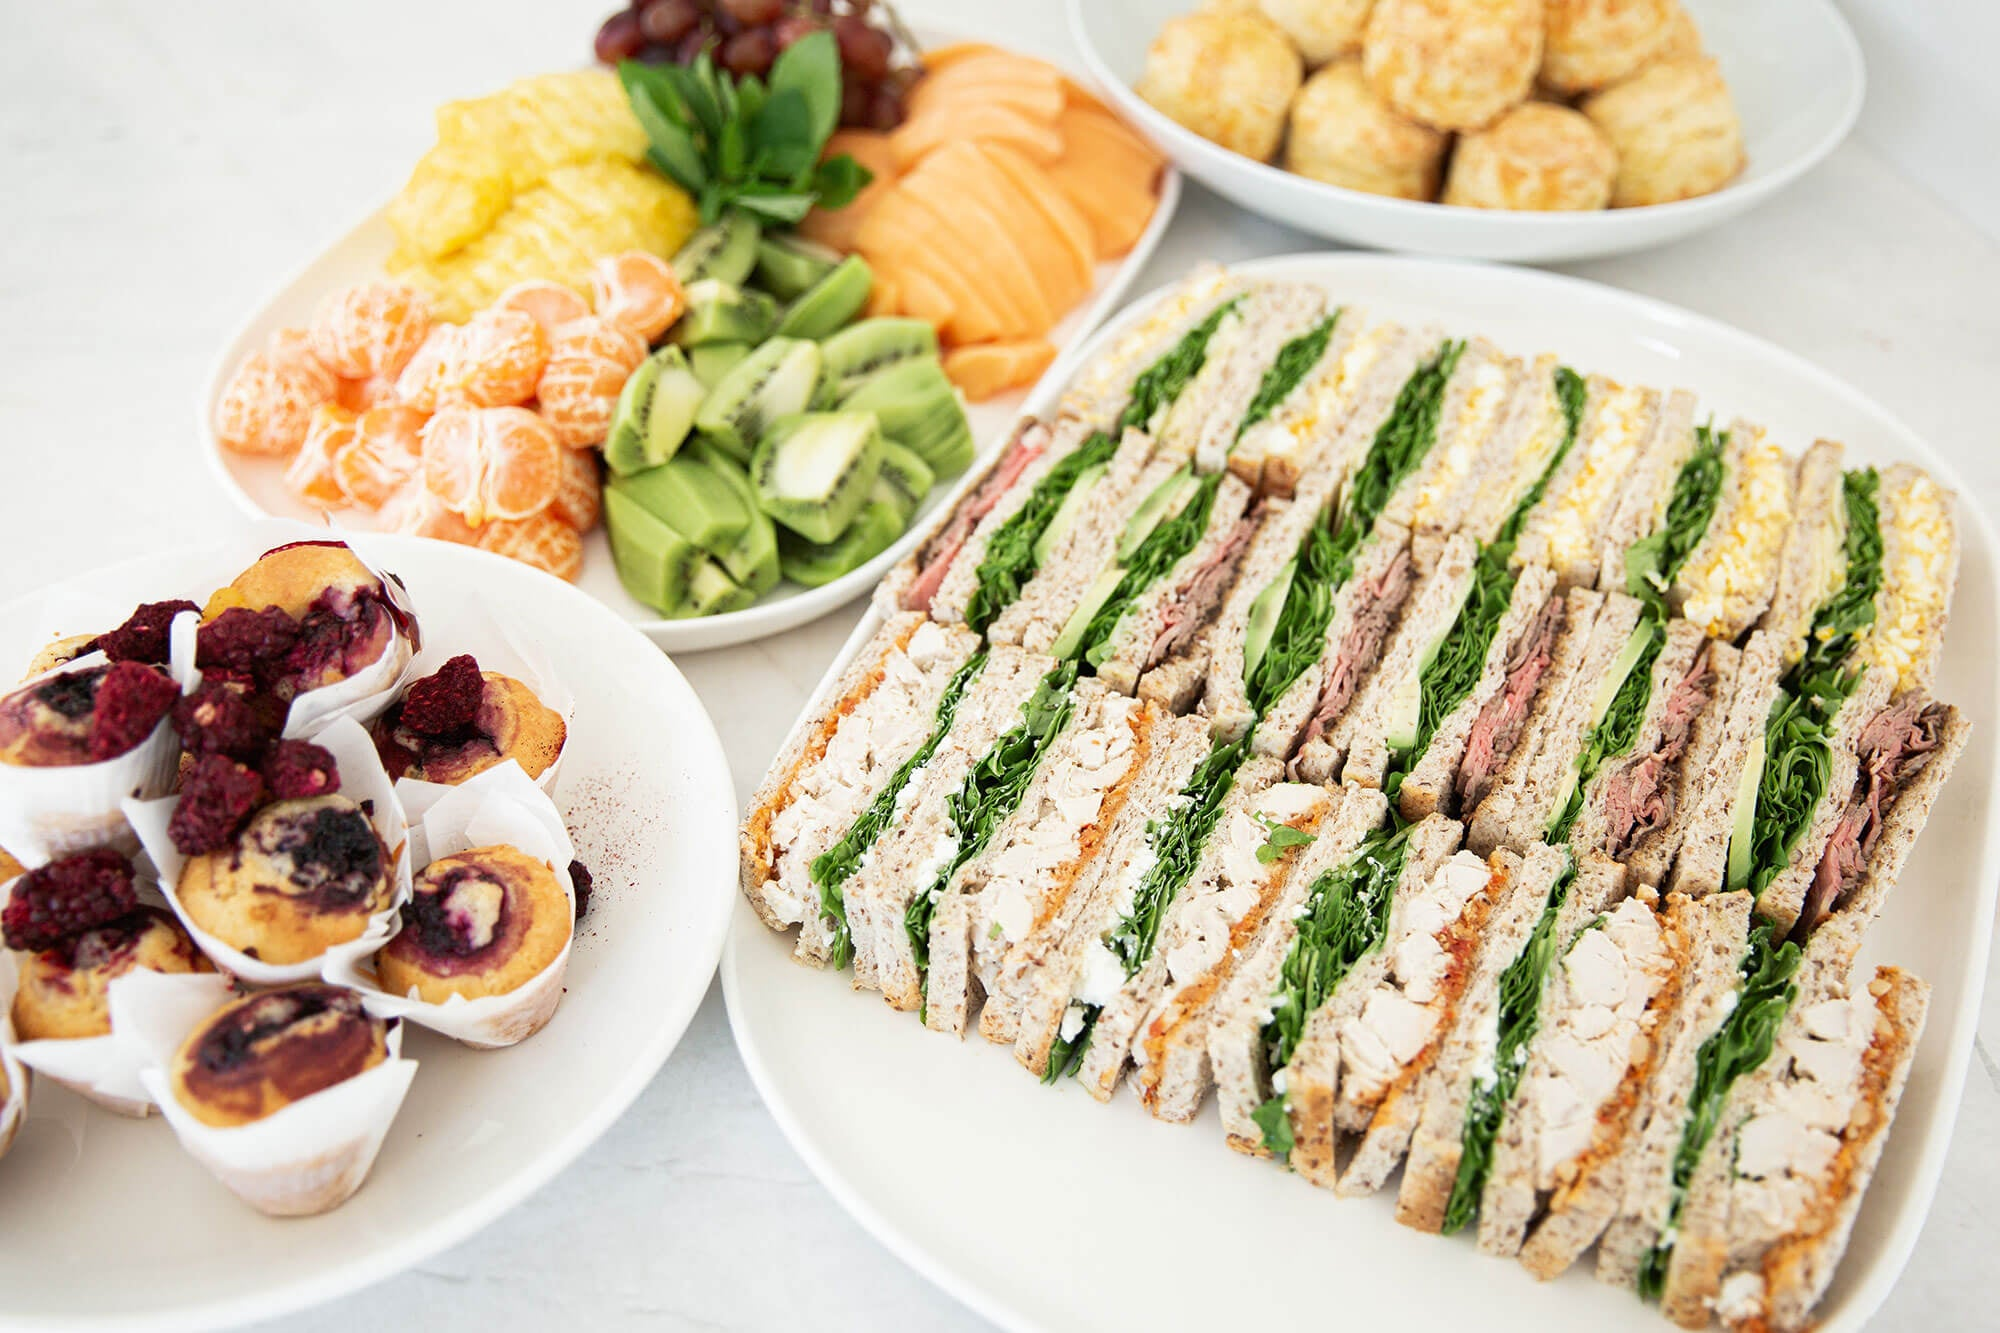 Club Sandwiches, Muffins, Fruit Platter and Scones from Catroux's Morning Tea Catering Menu